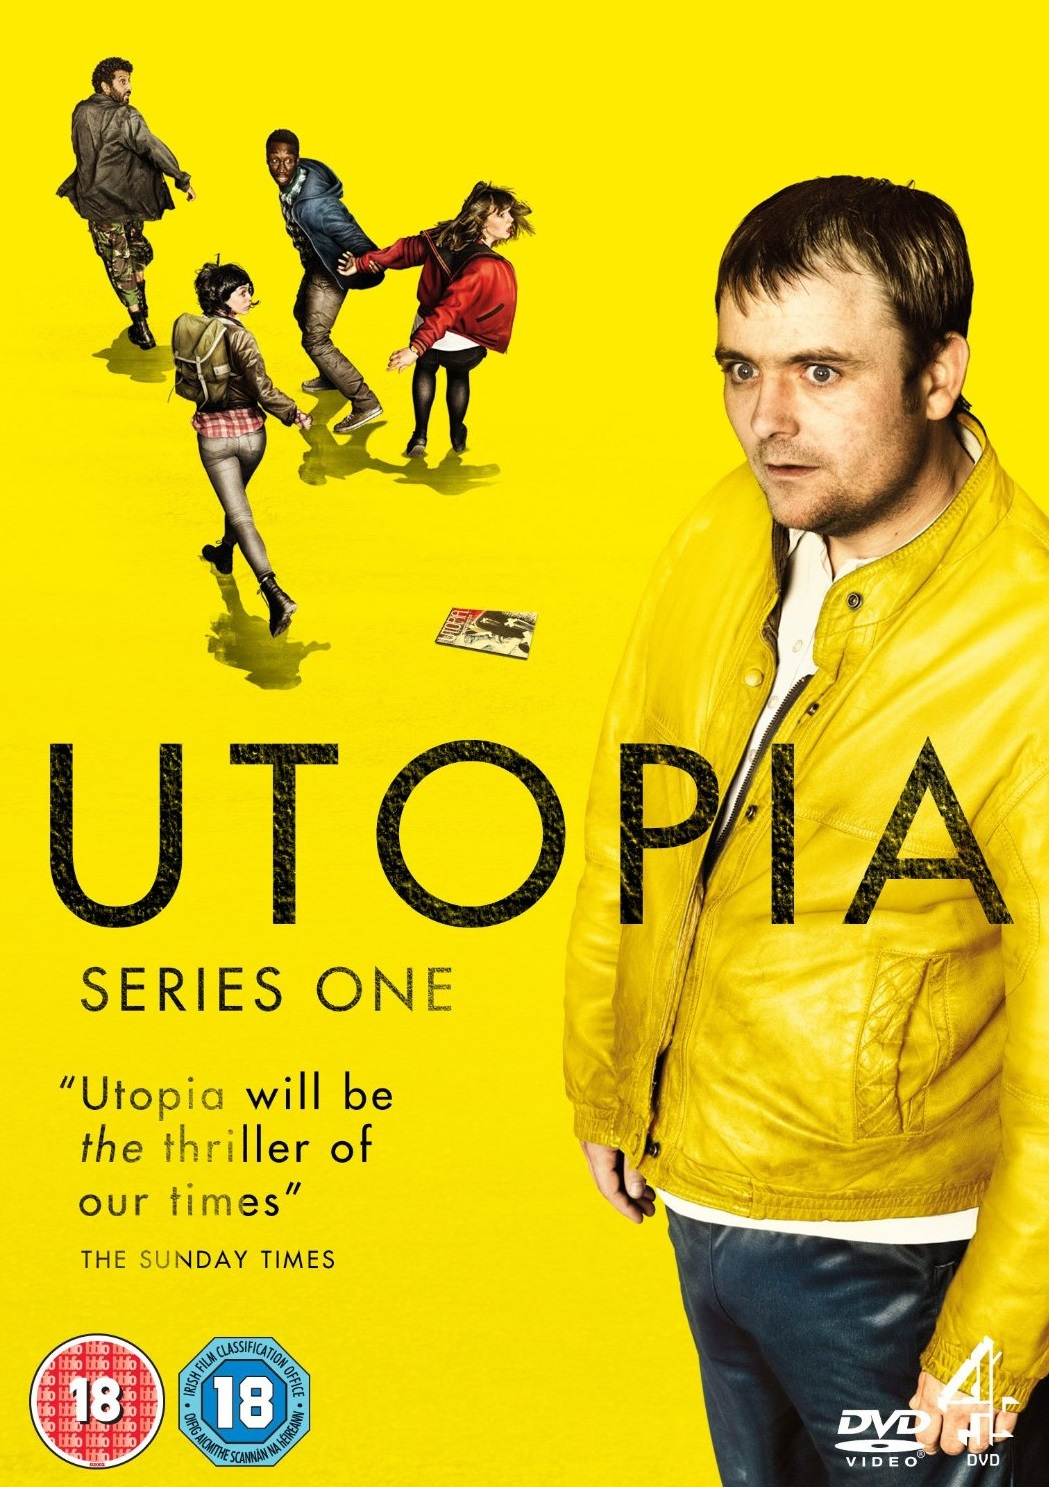 Utopia-Season-1-DVD-Artwork-utopia-38008460-1049-1487